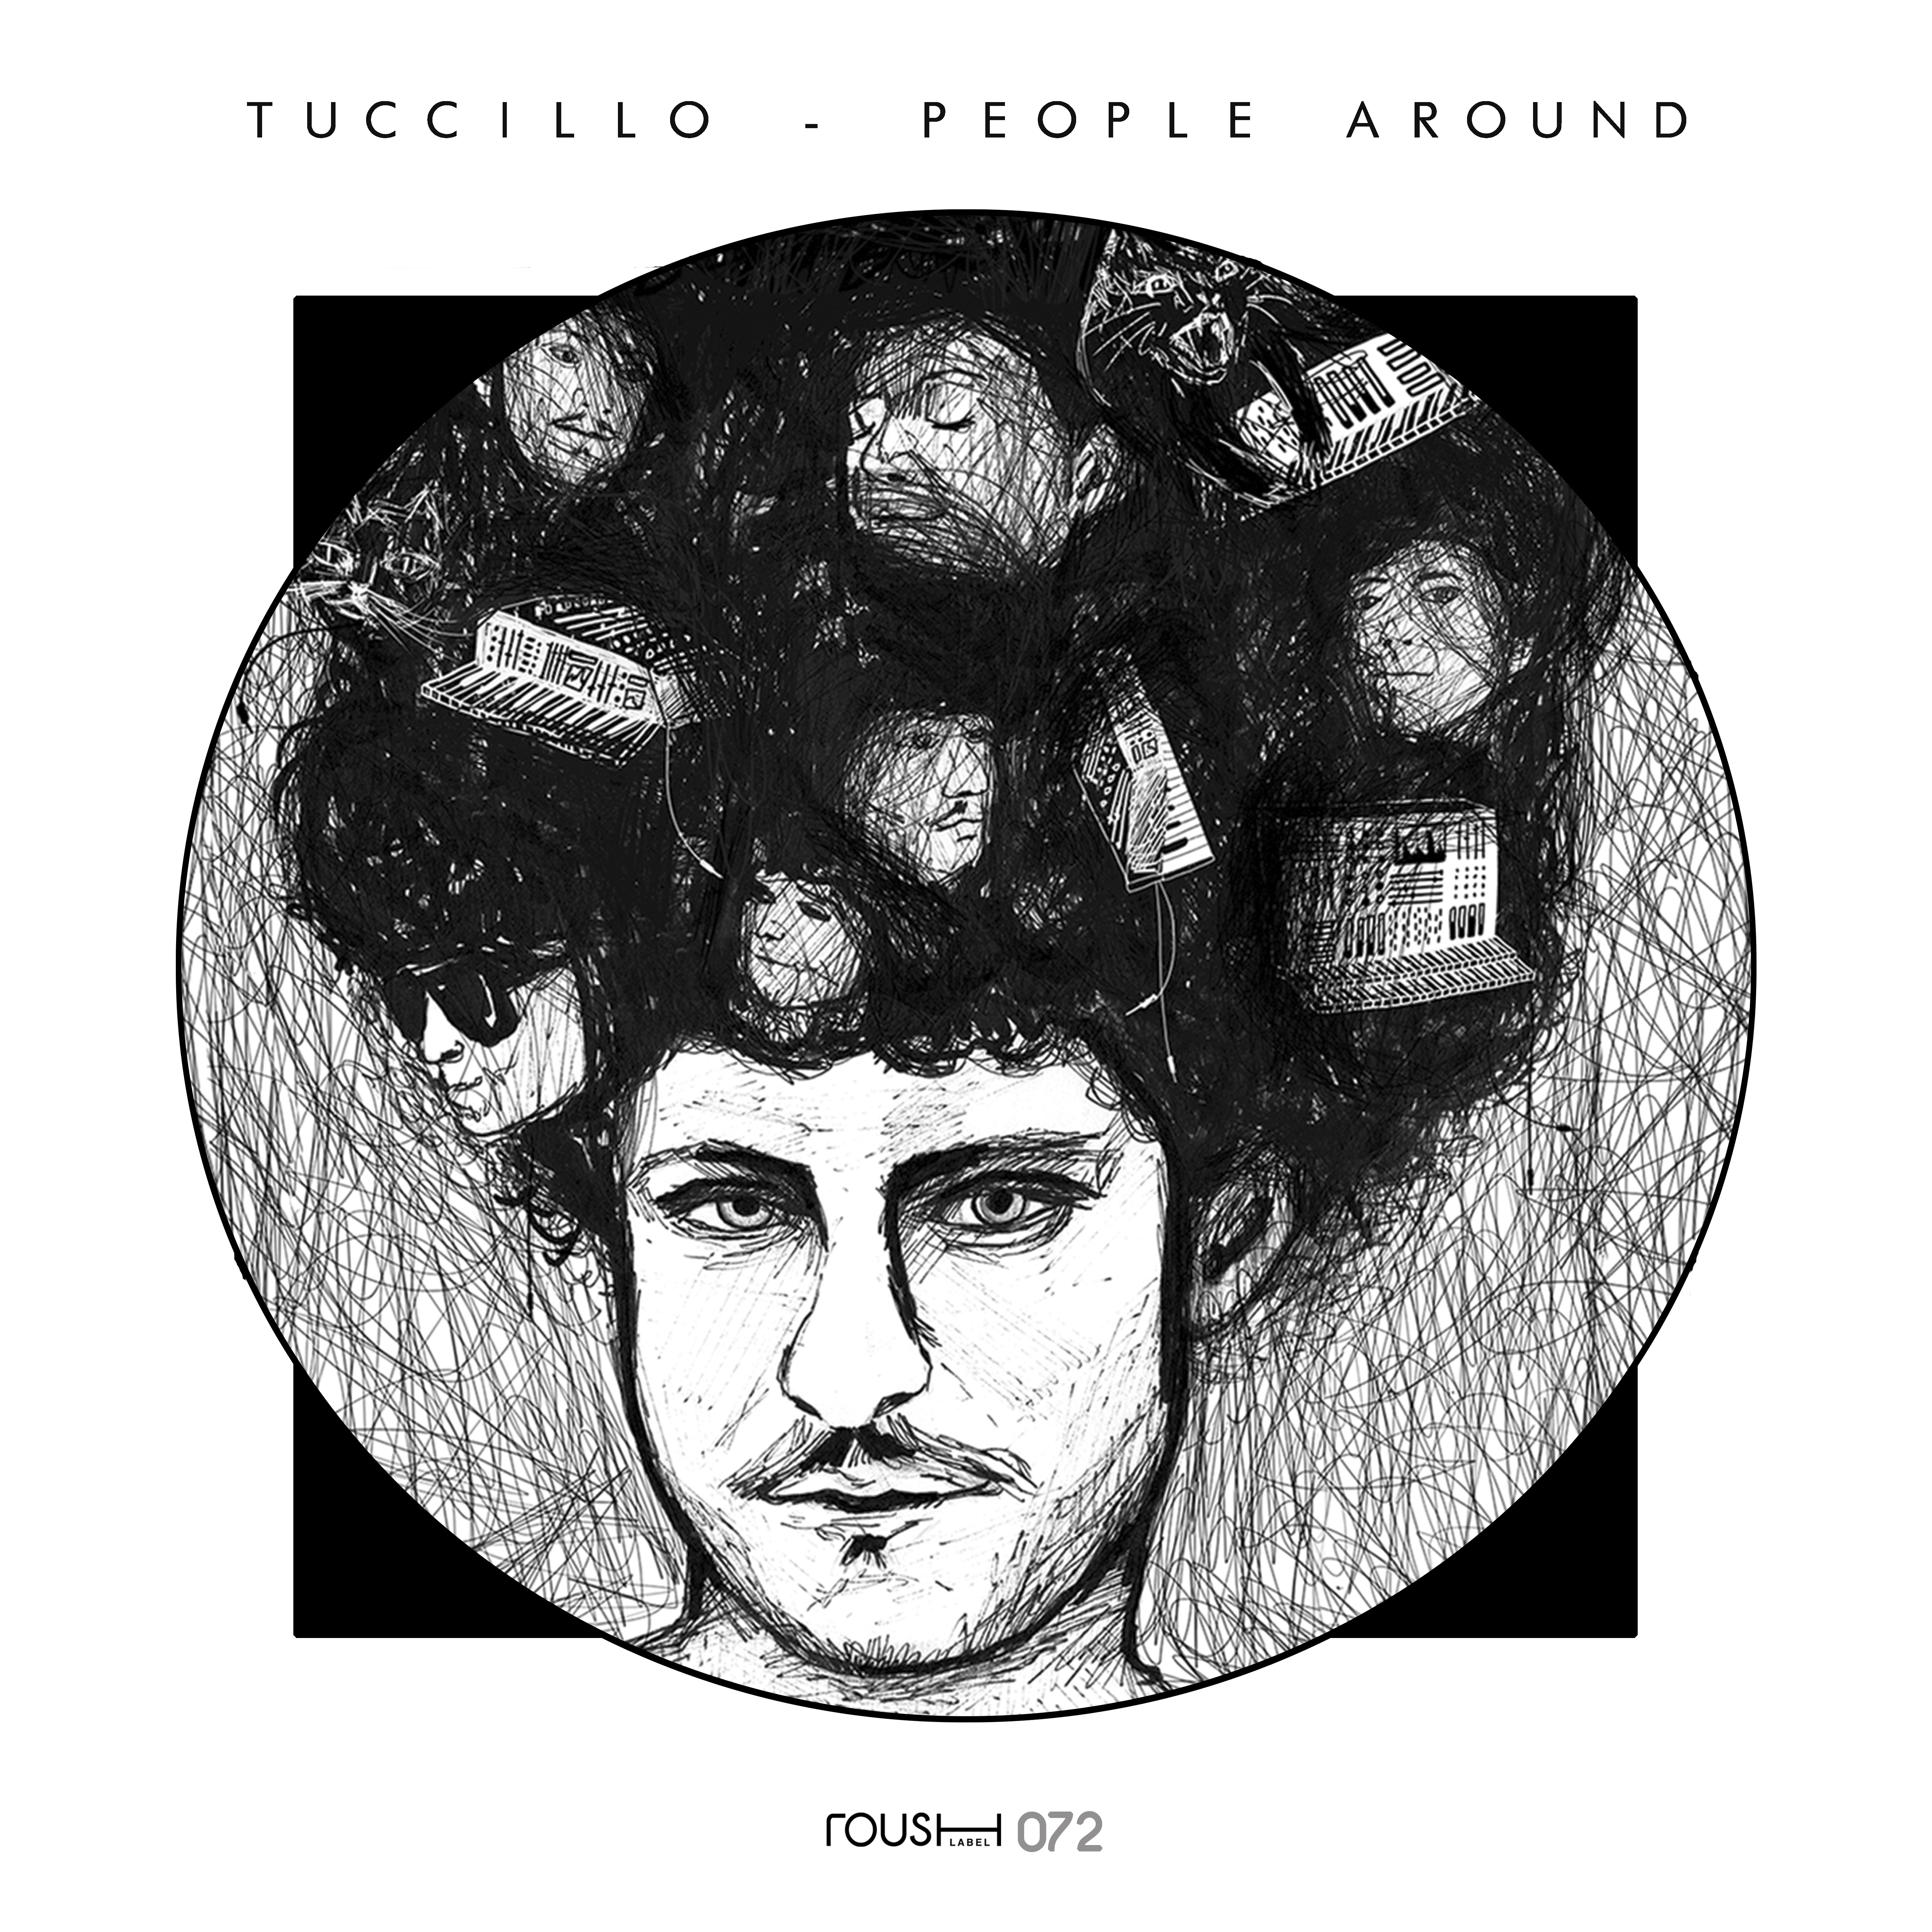 tuccillo_-_people_around.jpg